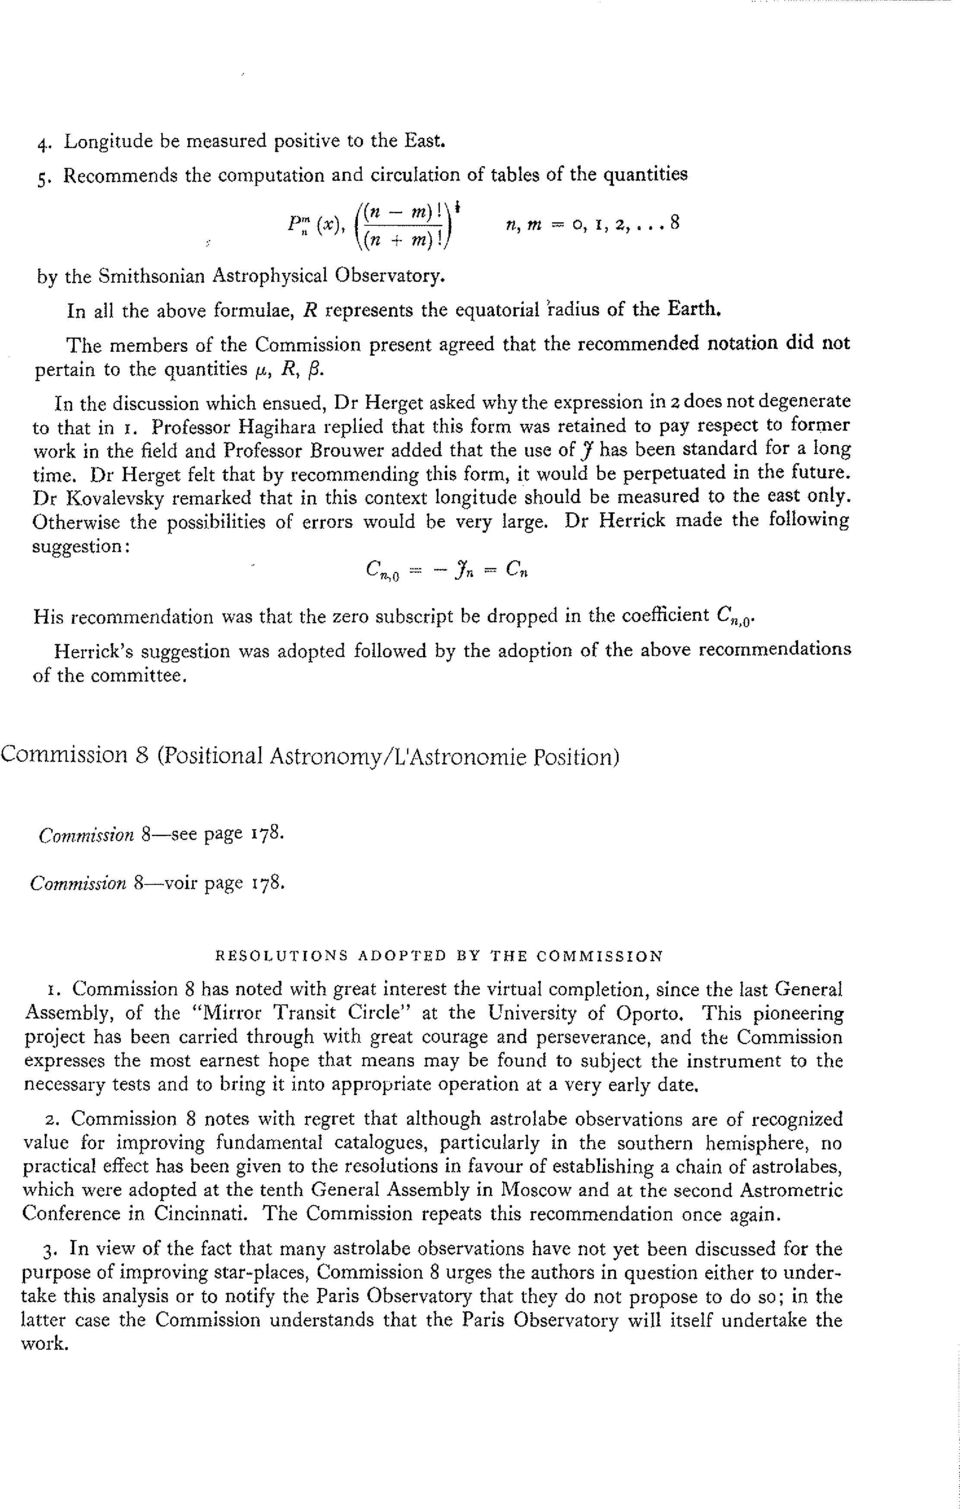 "The members of the Commission present agreed that the recommended notation did not pertain to the quantities /-"" R, {J."